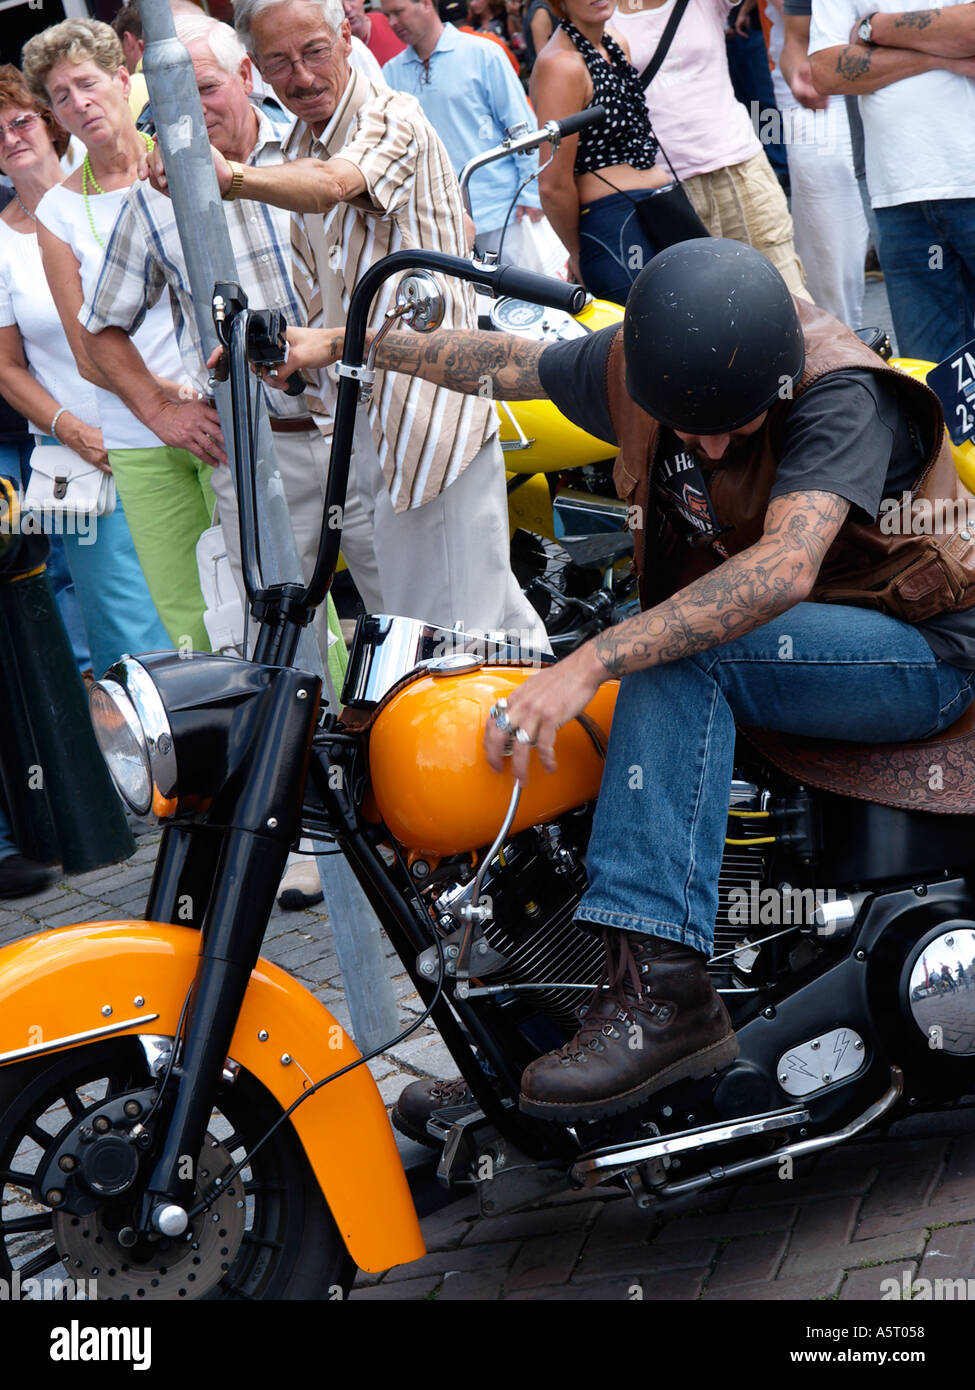 a heavily tattooed biker putting his orange classic chopper motorcycle in first gear with people looking - Stock Image